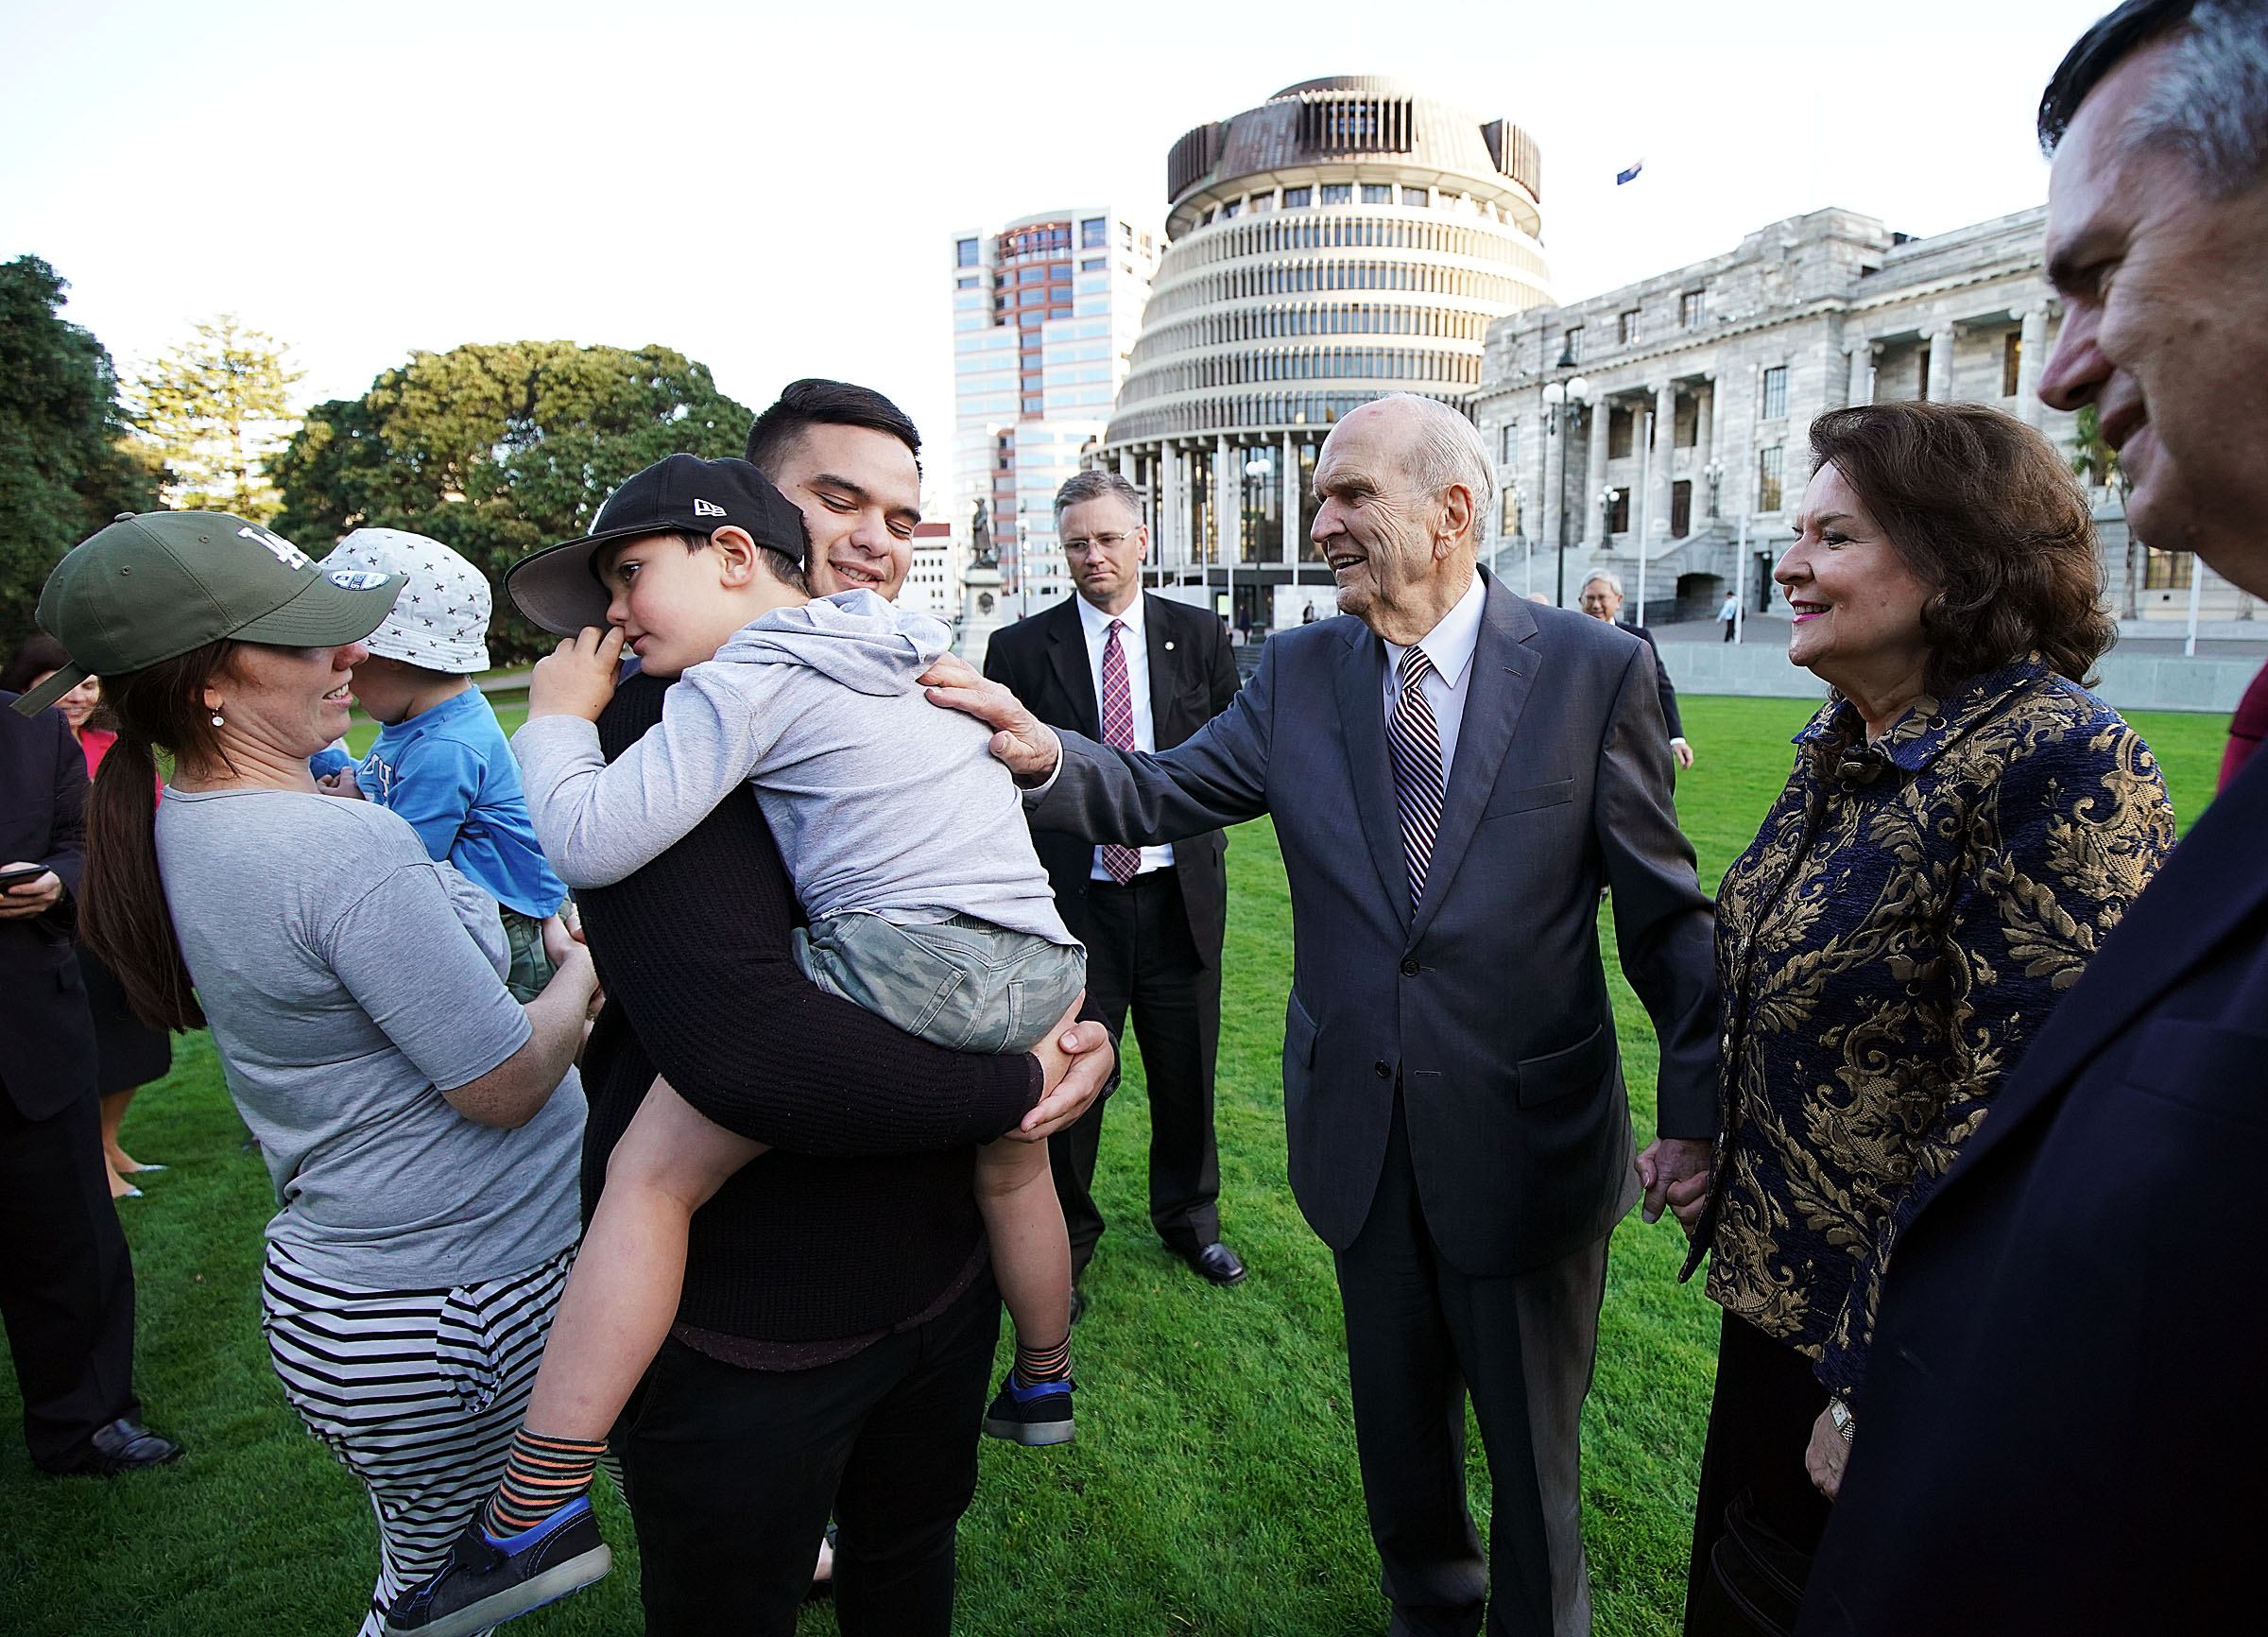 President Russell M. Nelson of The Church of Jesus Christ of Latter-day Saints and his wife, Sister Wendy Nelson, greet Quentin Daniels, holding his son Archer, with Quentin's wife, Rebecca, at left holding their son Gideon, in Wellington, New Zealand, on Monday, May 20, 2019.